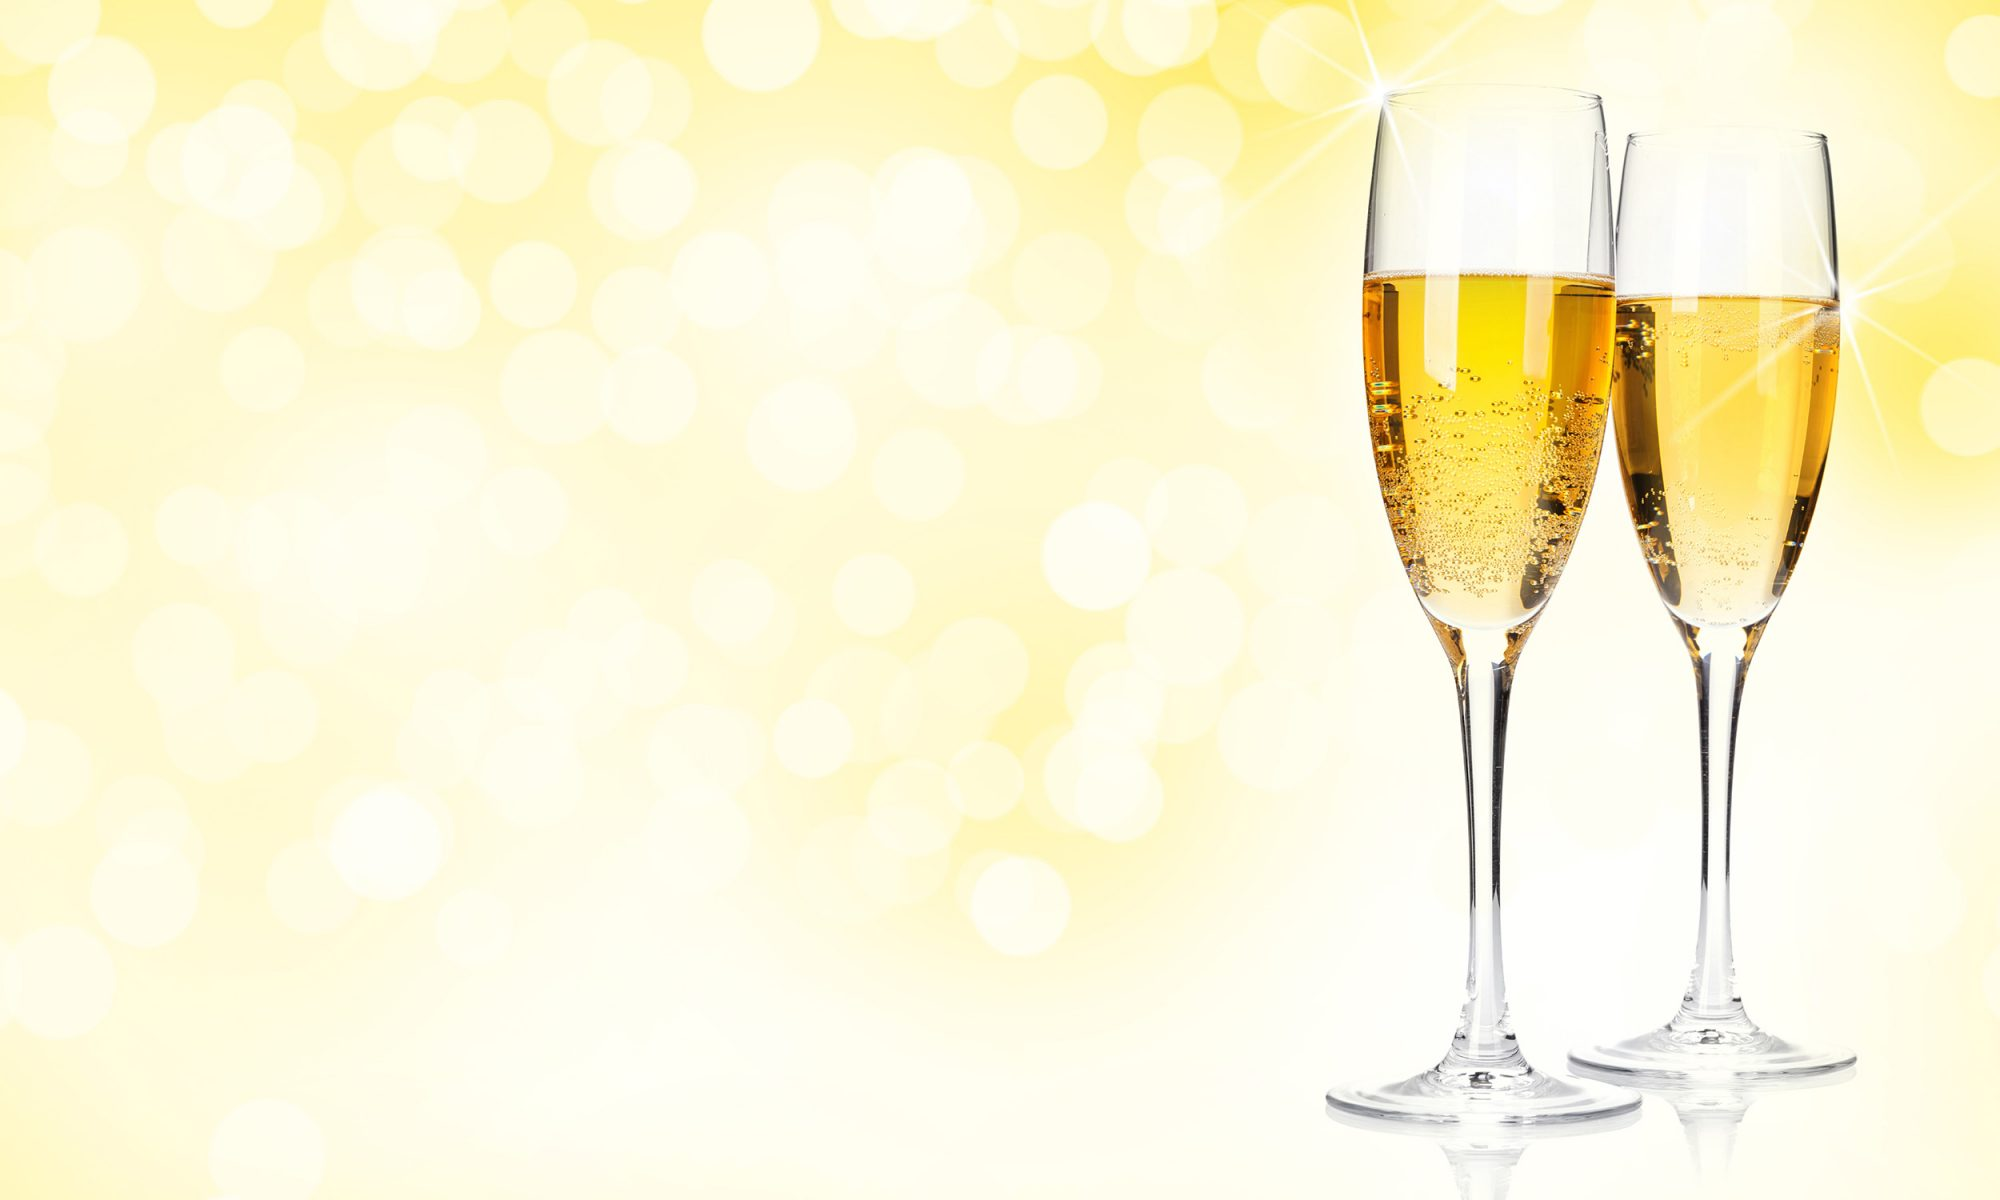 EC: Trump's Inaugural Champagne Isn't Really Champagne, But Whatevs